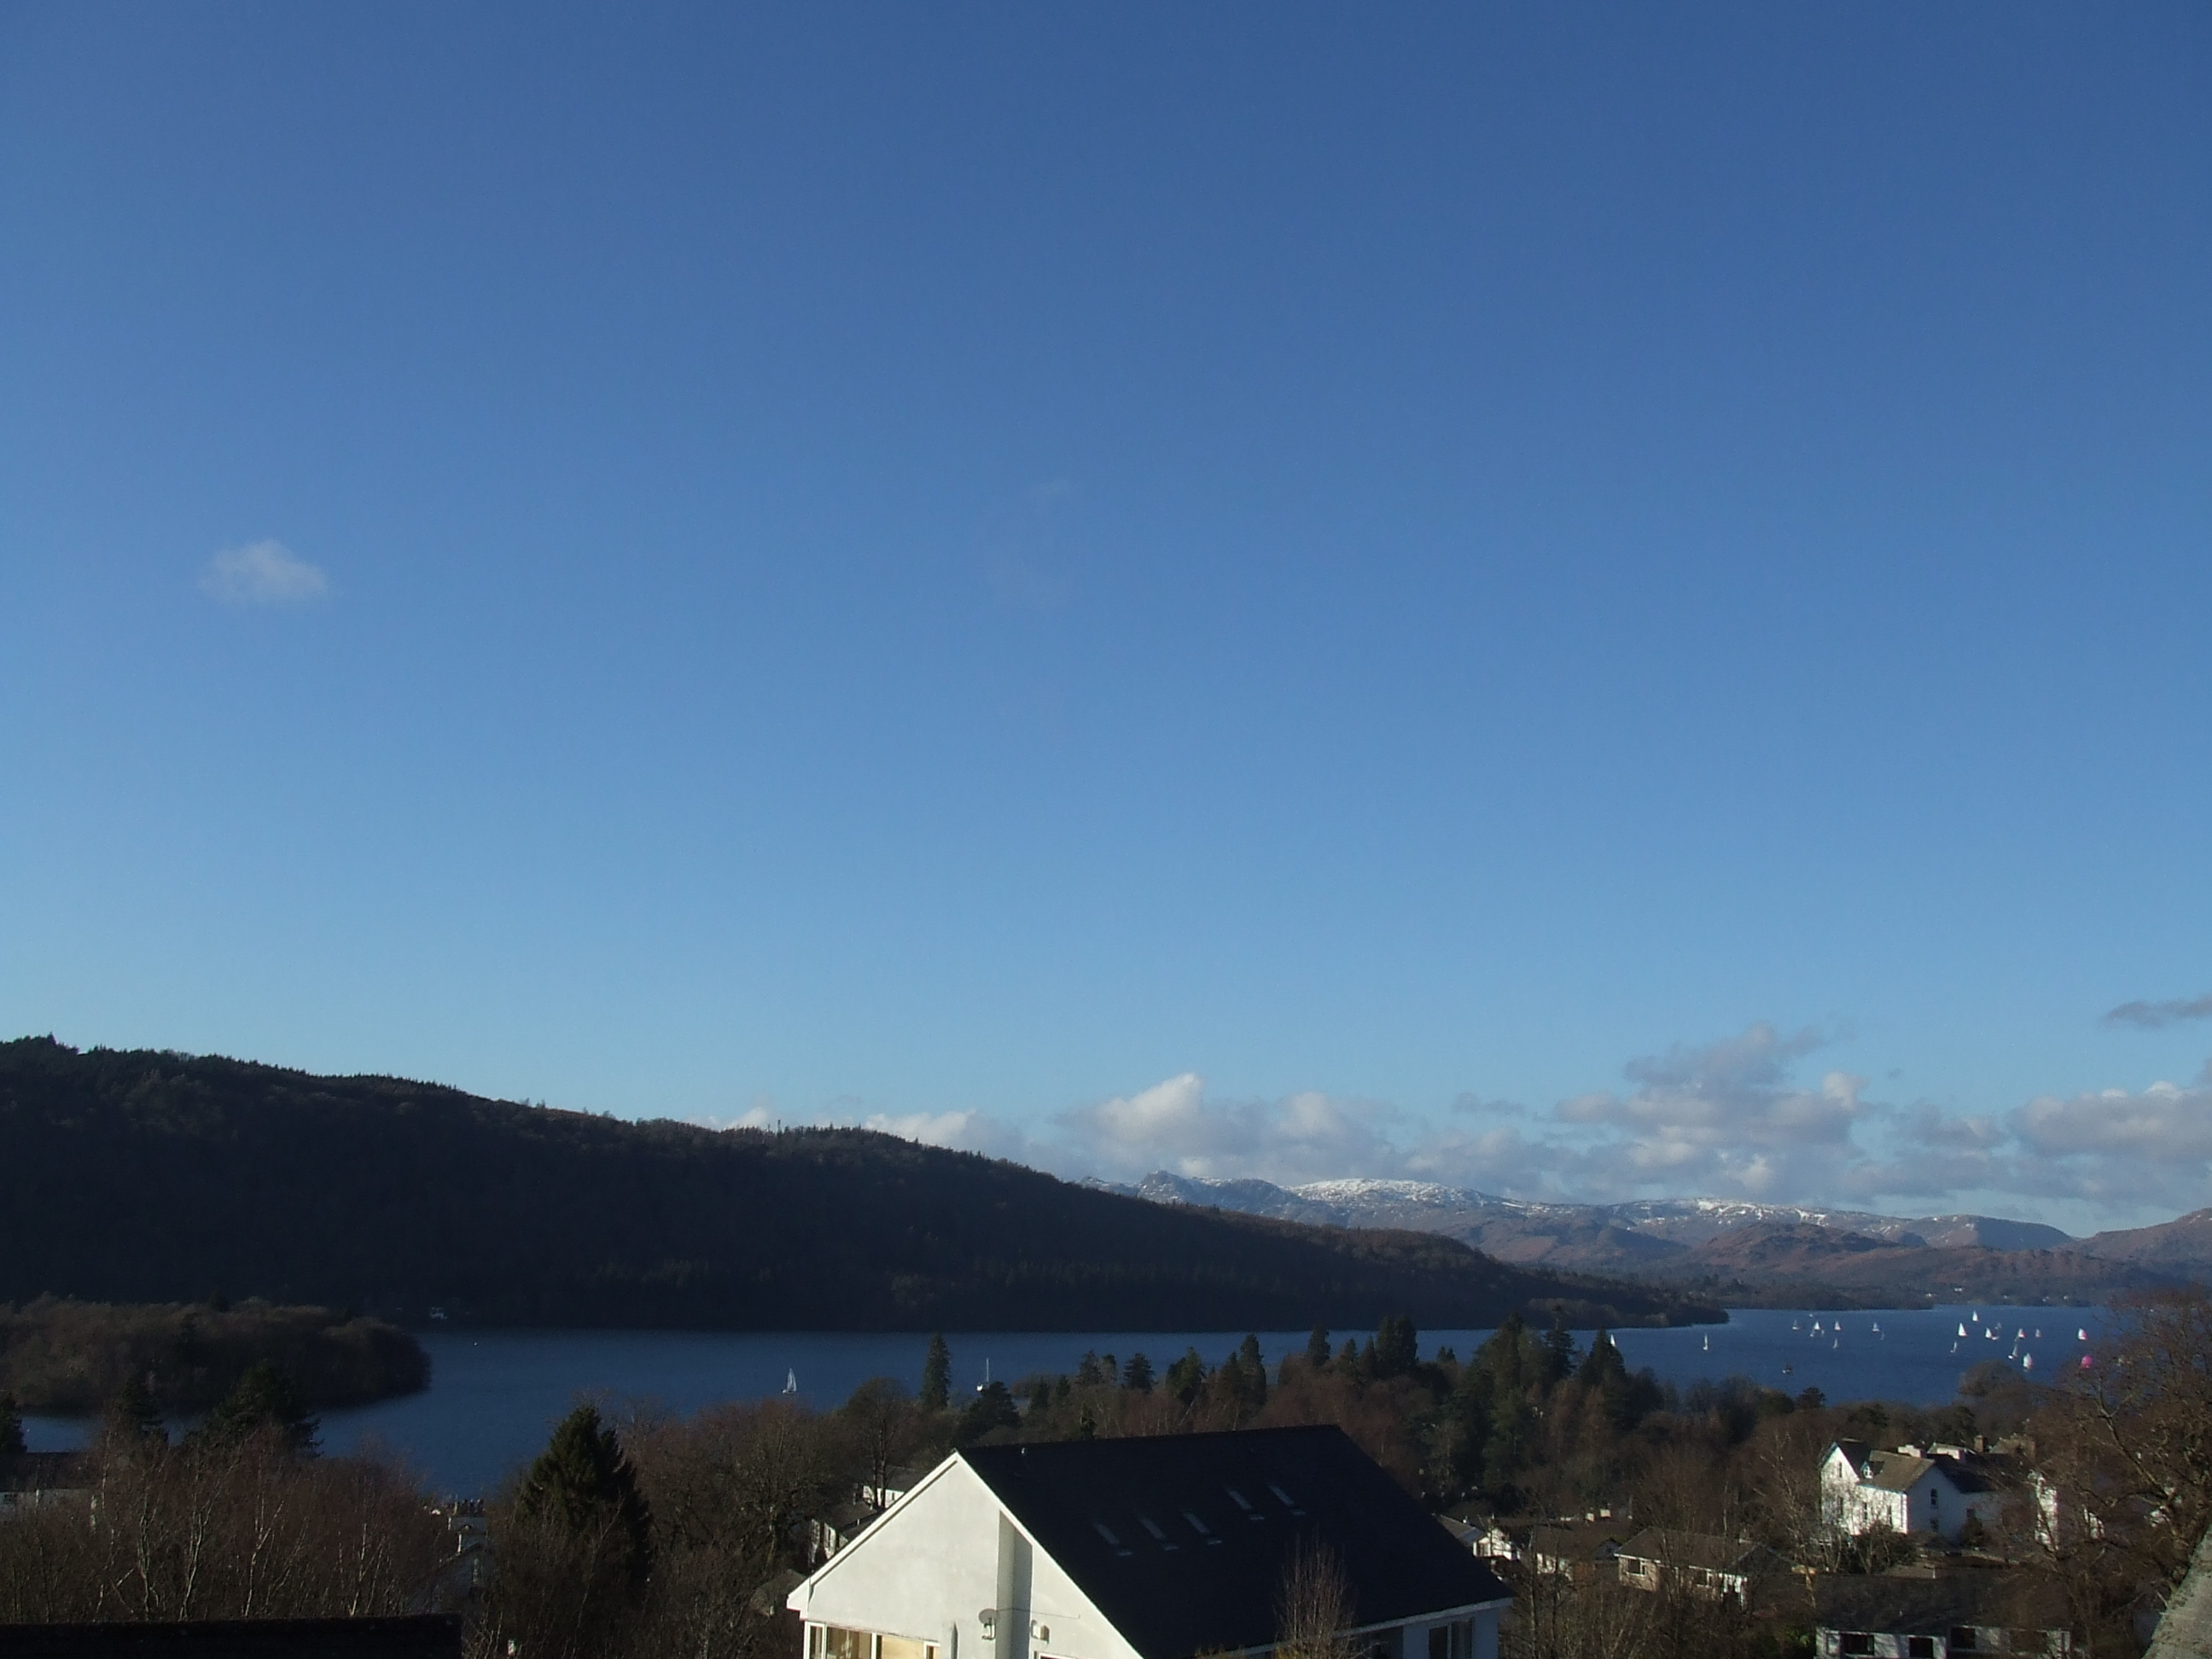 lake windermere with yachts